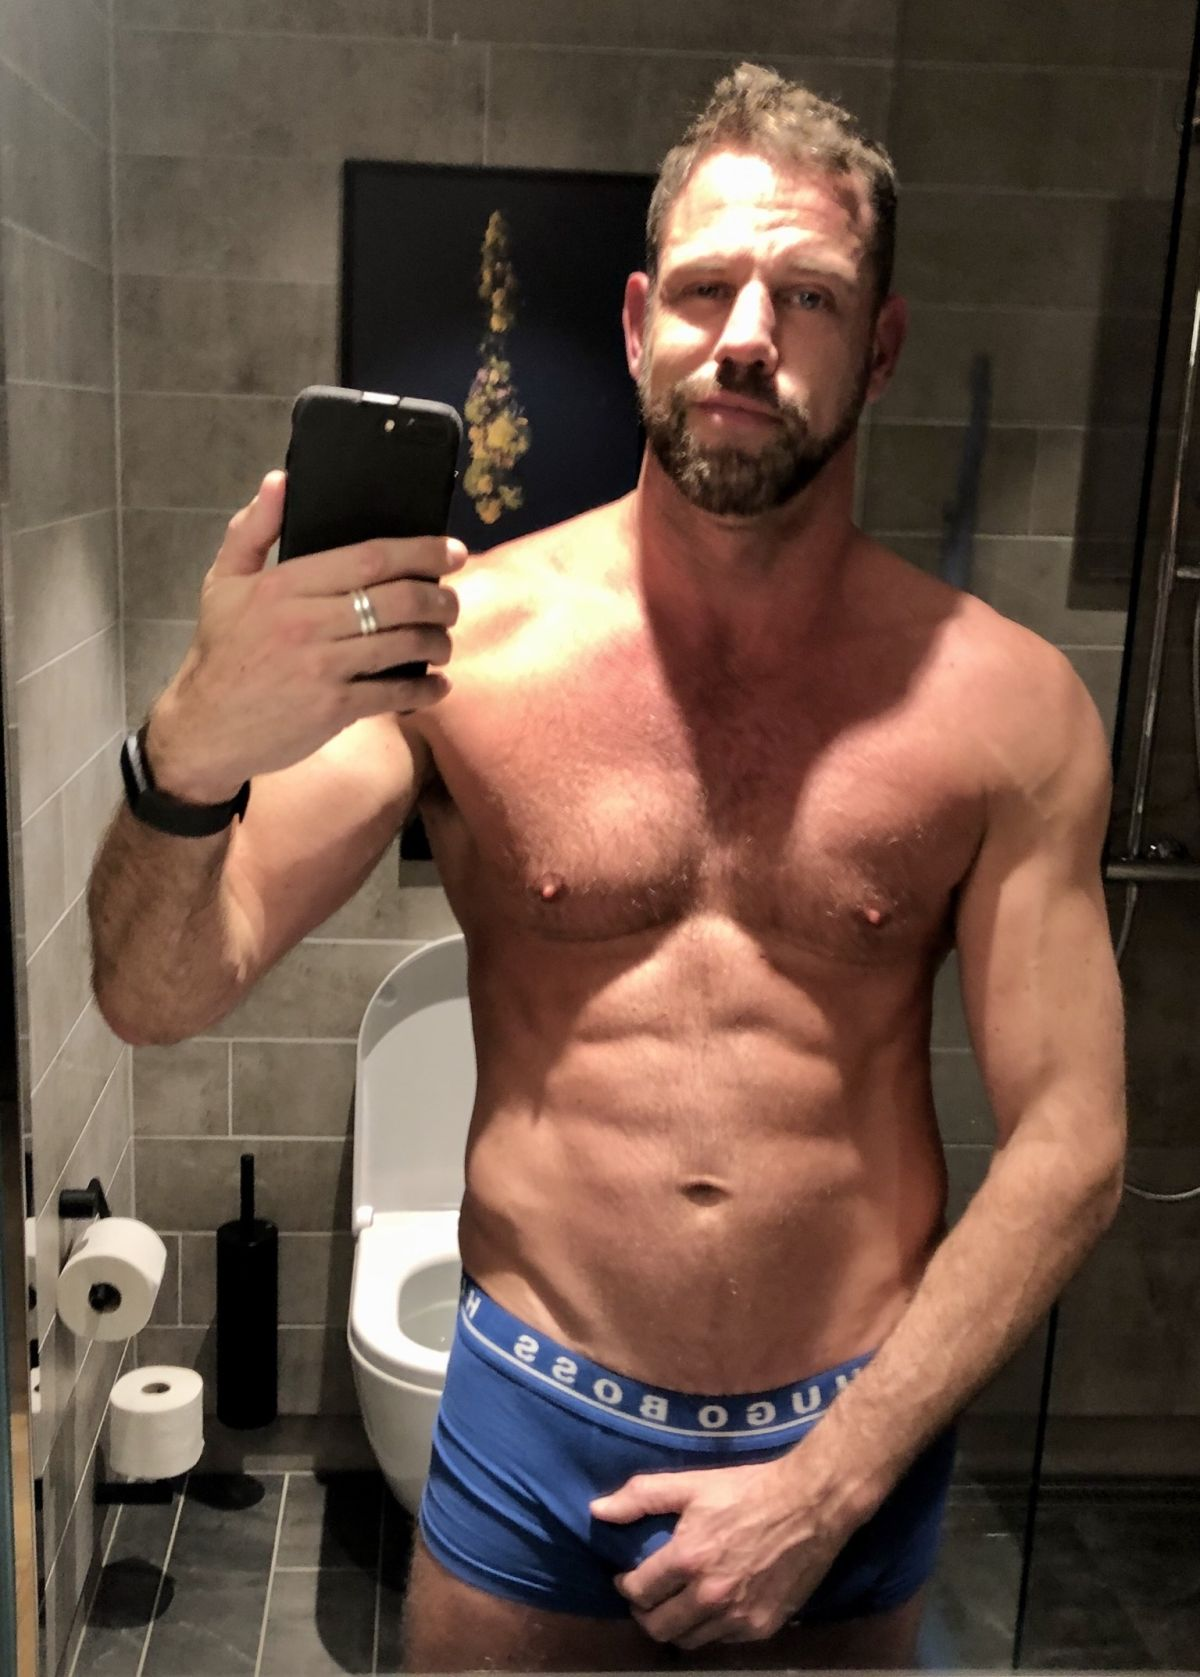 Free Simonsays4u onlyfans onlyfans leaked